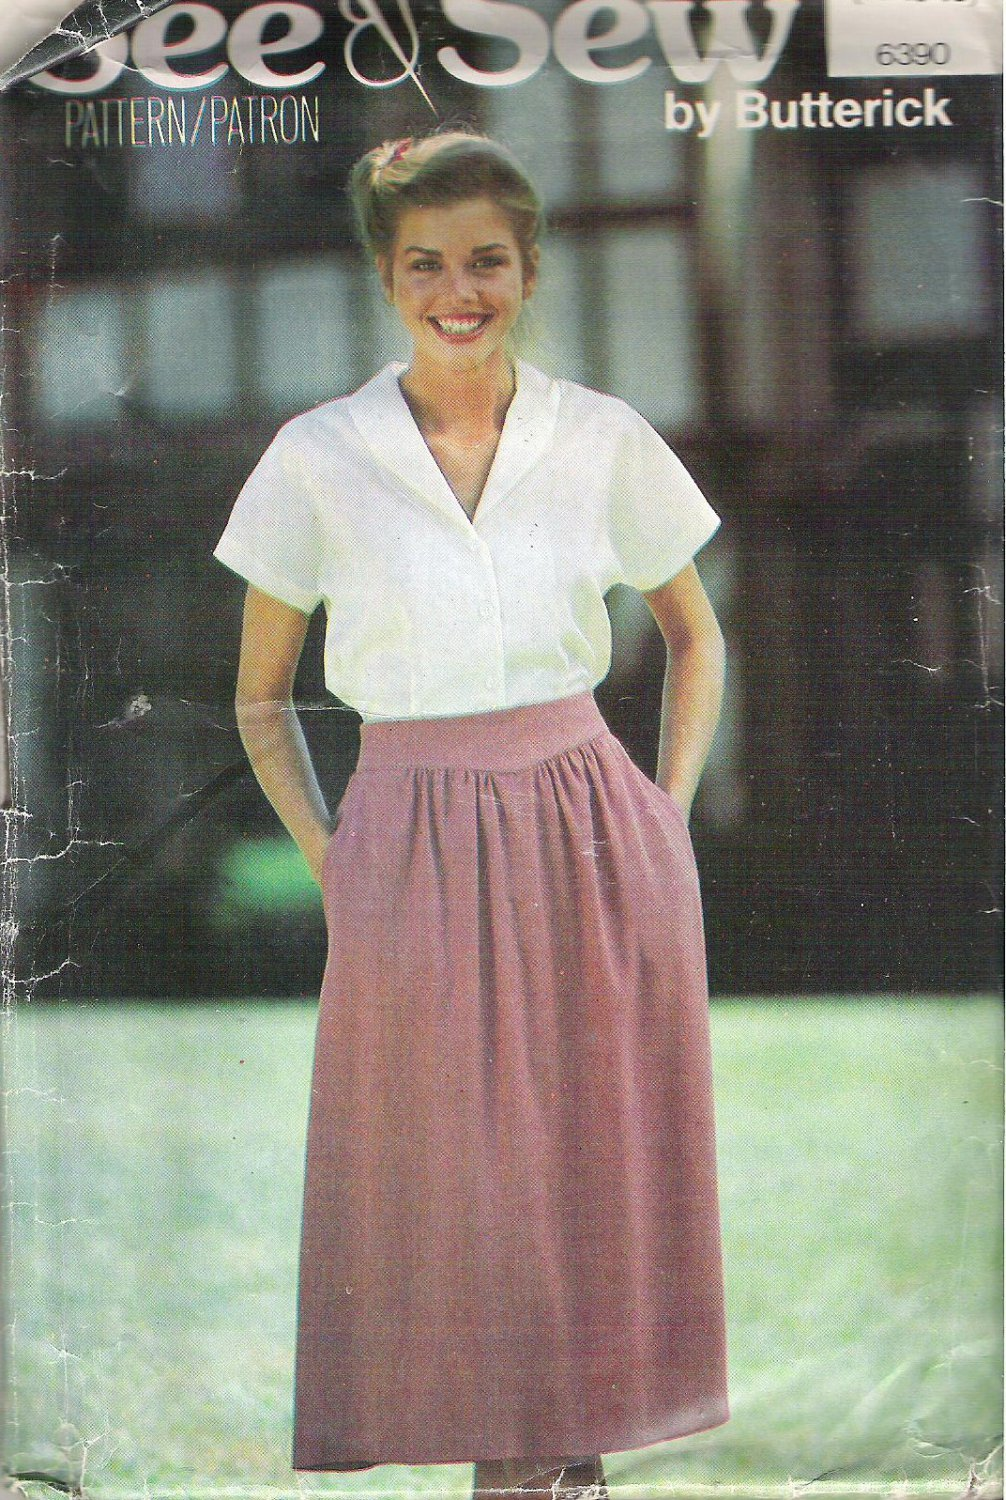 Butterick 6390 Pattern See & Sew  Blouse Shirt Top and Skirt  Size 14-18  Cut to 18